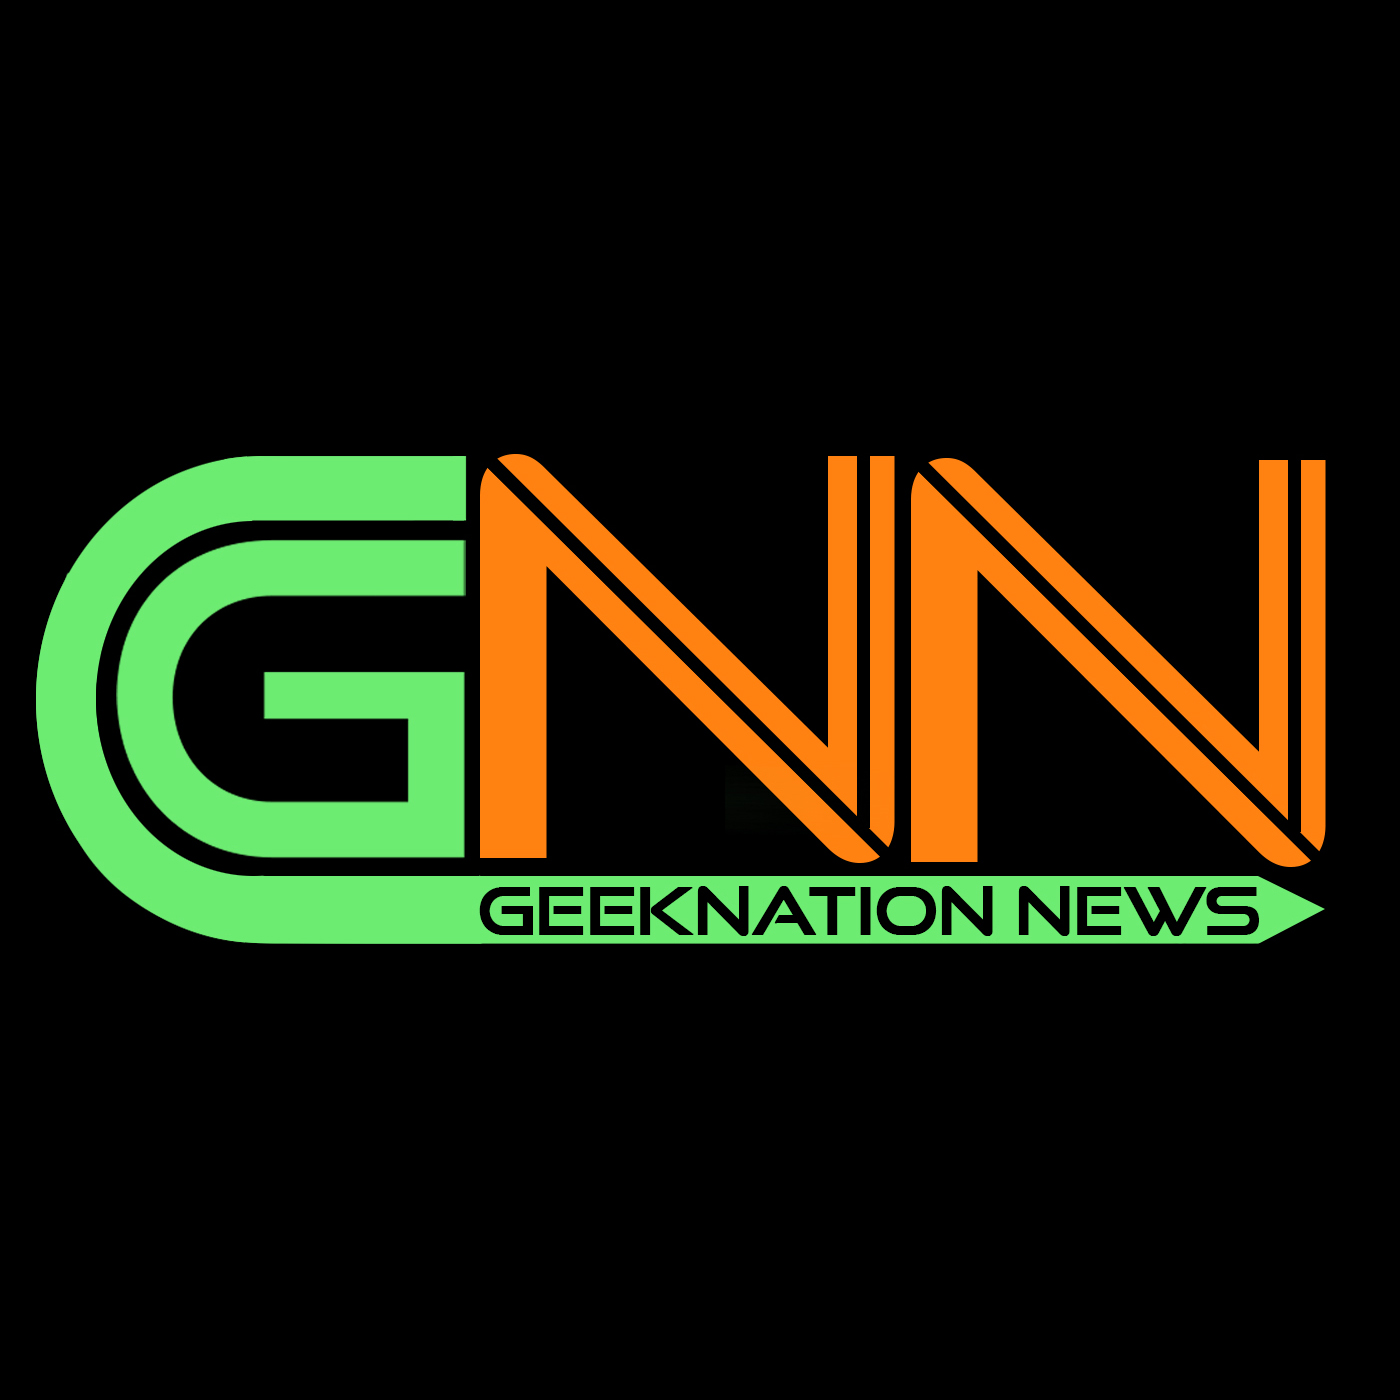 GeekNation News